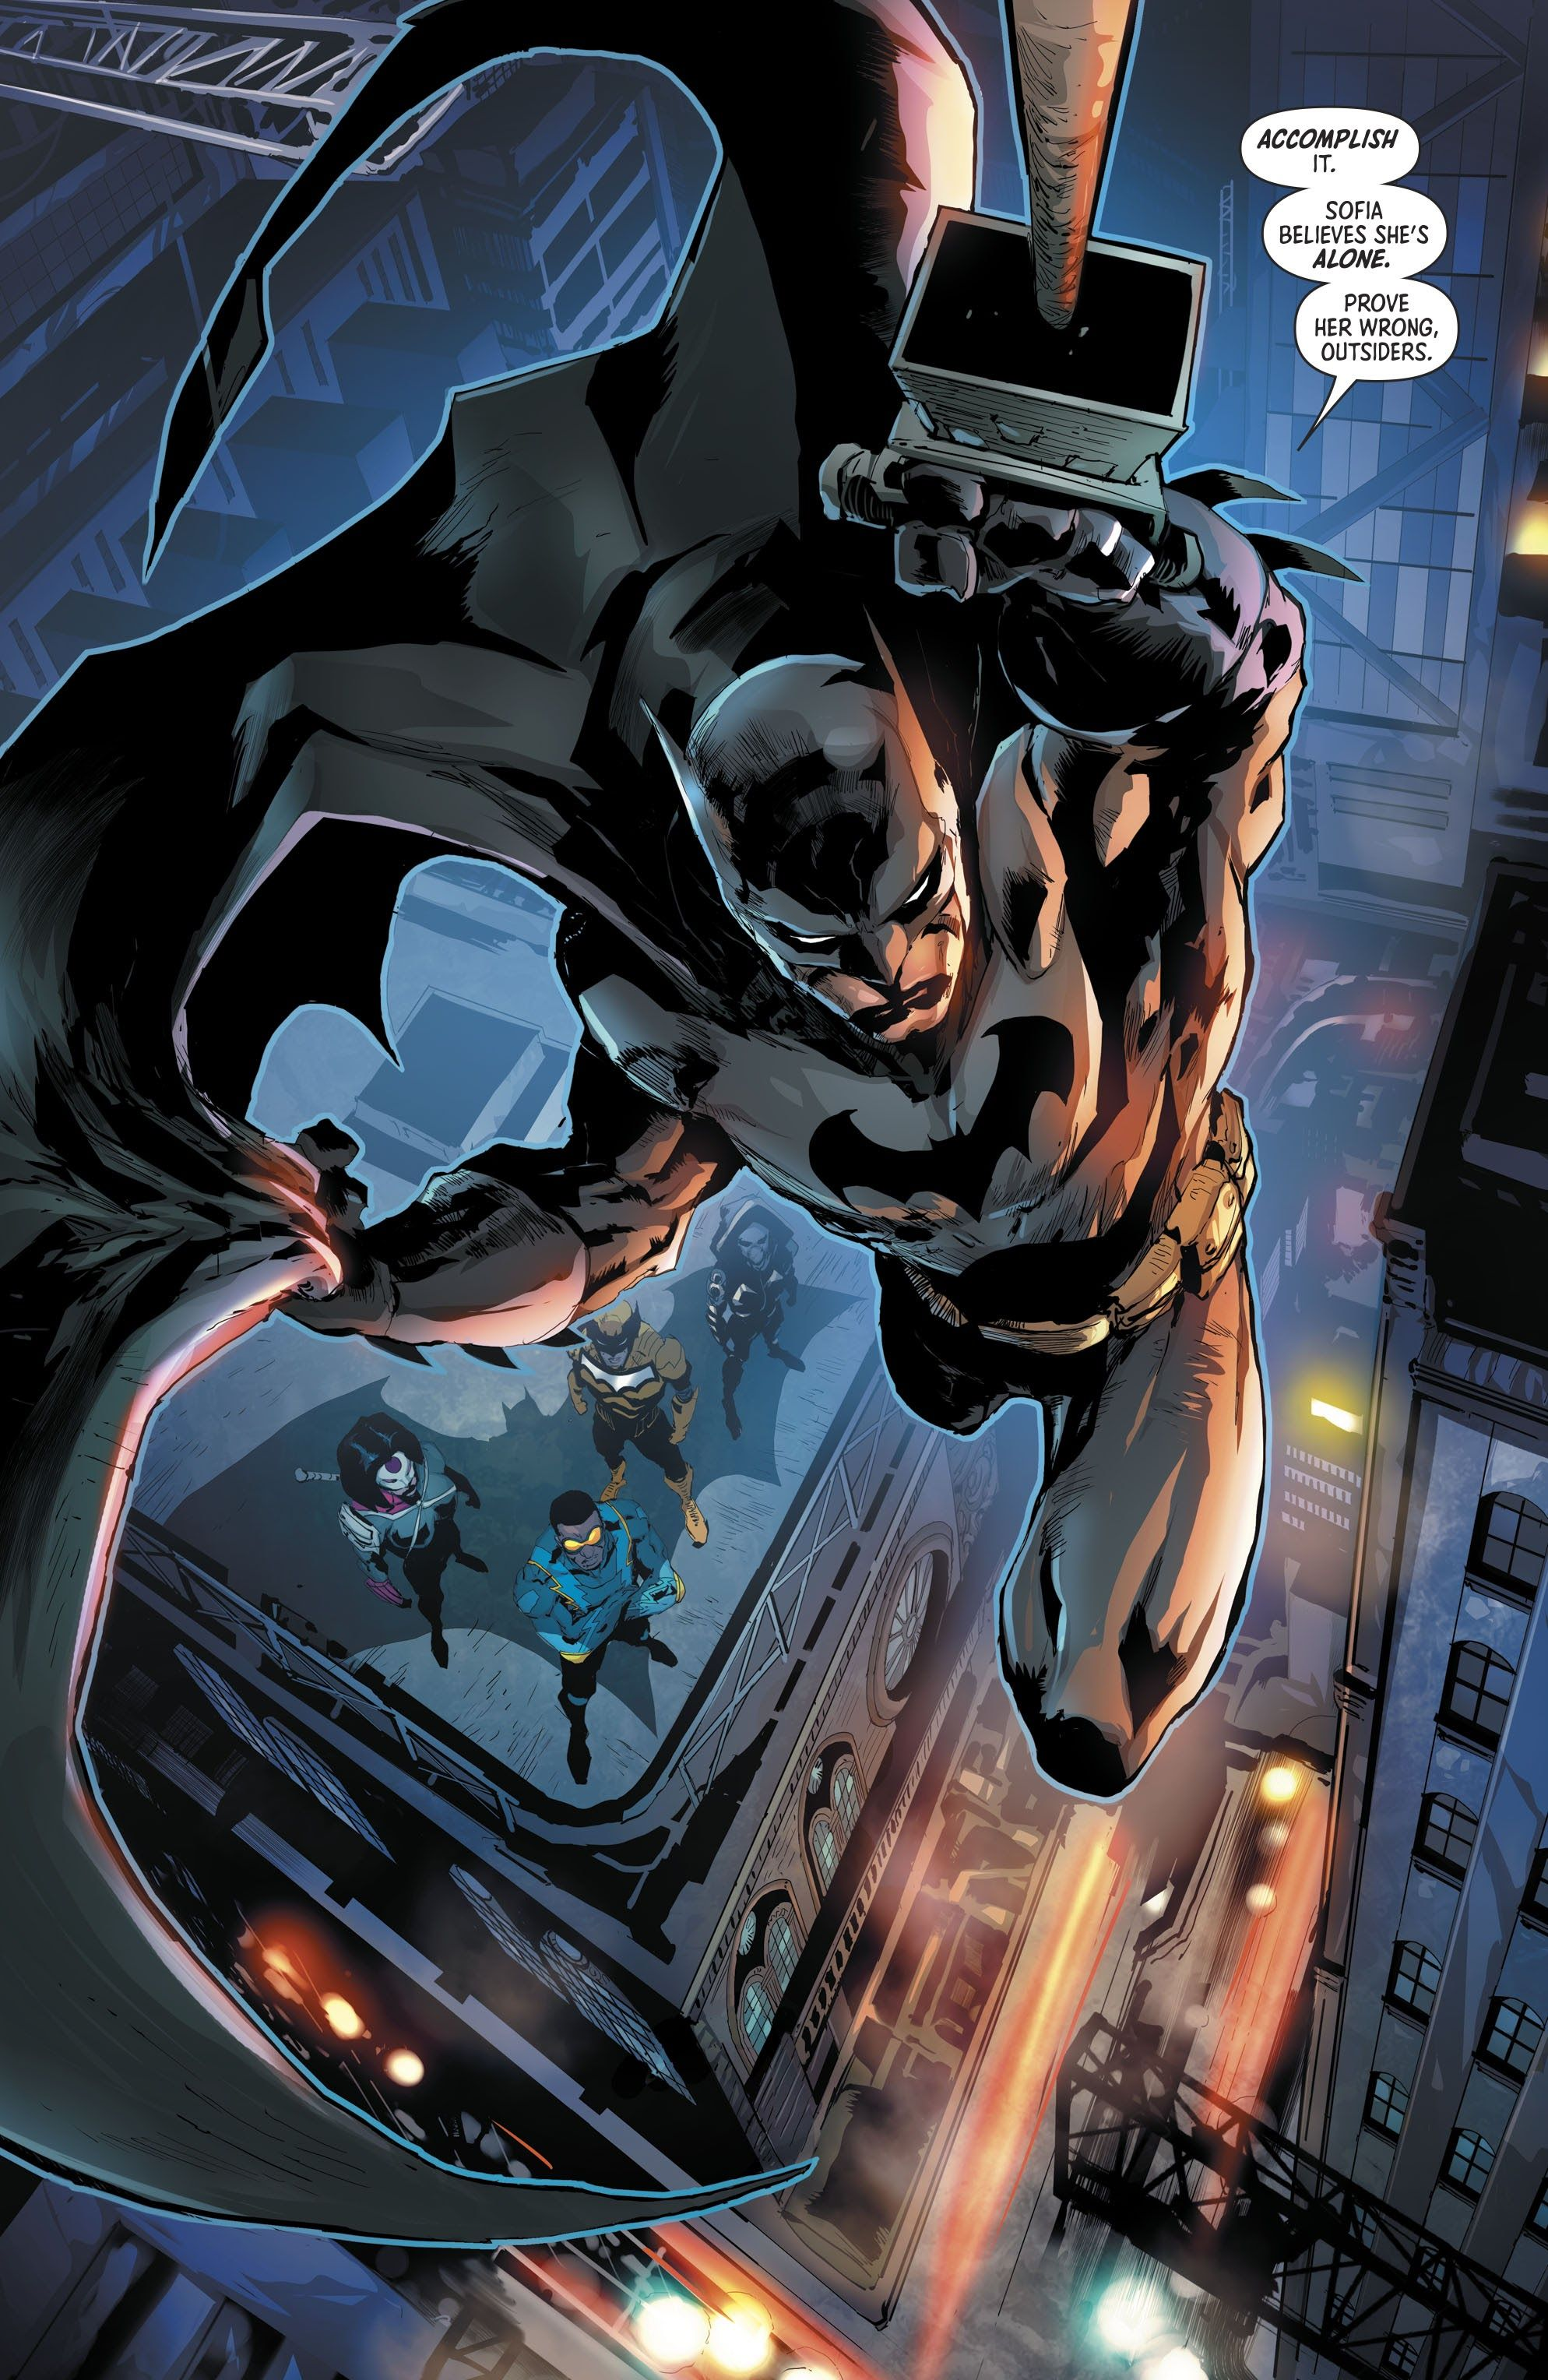 Batman The Outsiders Issue 1 Read Batman The Outsiders Issue 1 Comic Online In High Quality Batman Joker Wallpaper Superhero Comic Dc Comics Artwork